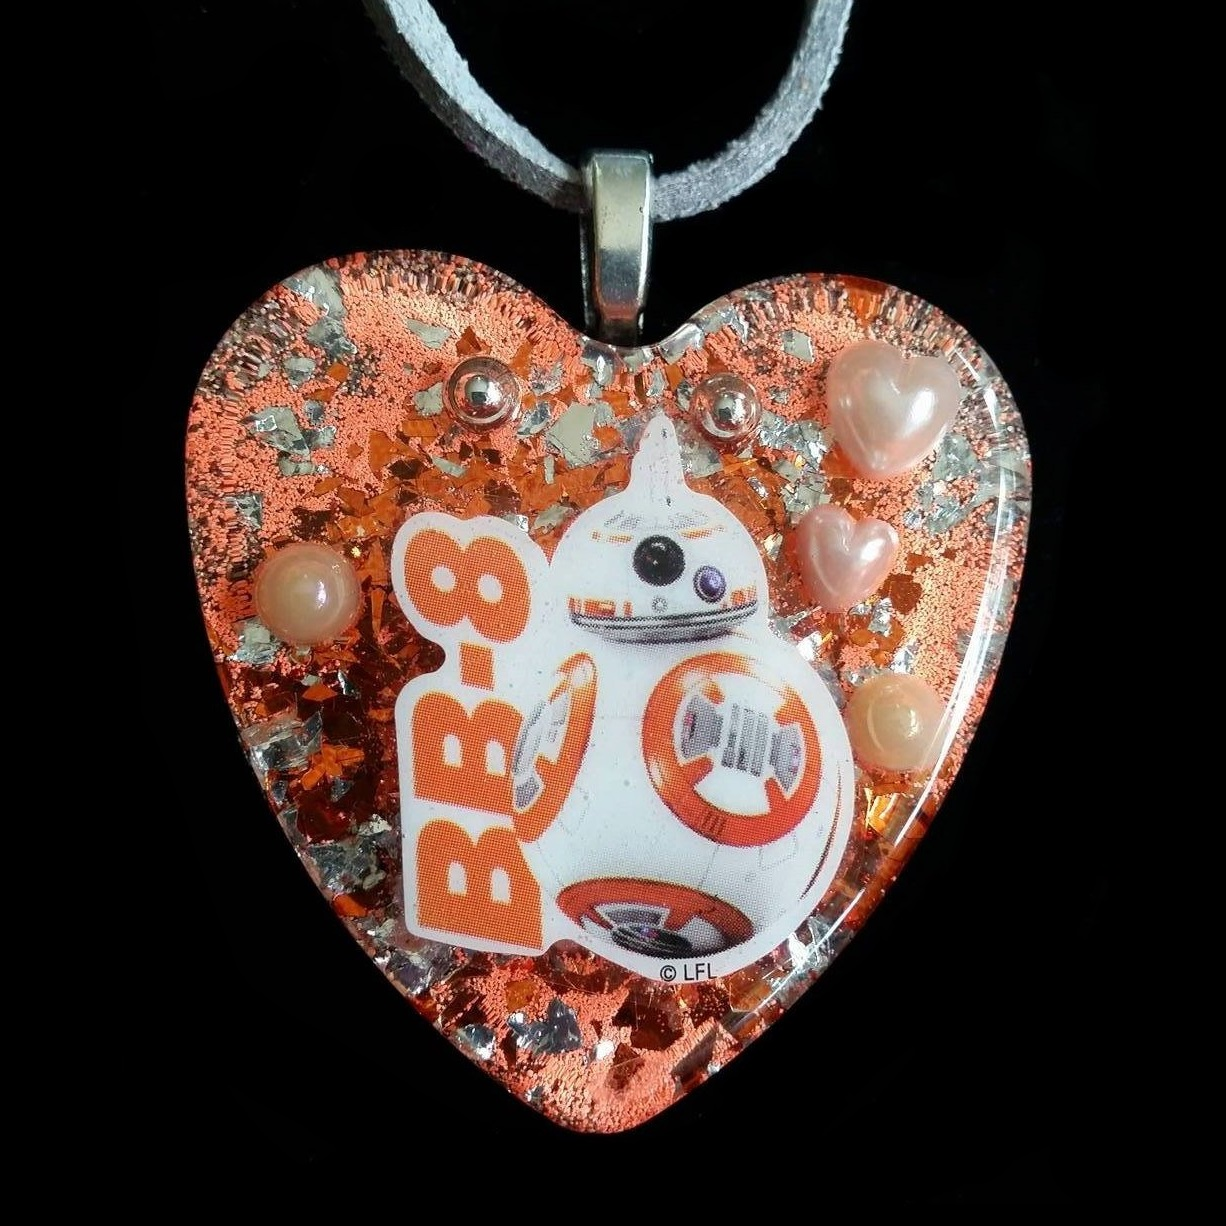 Star Wars Heart Shaped Necklace by Etsy Seller ChildishHeart